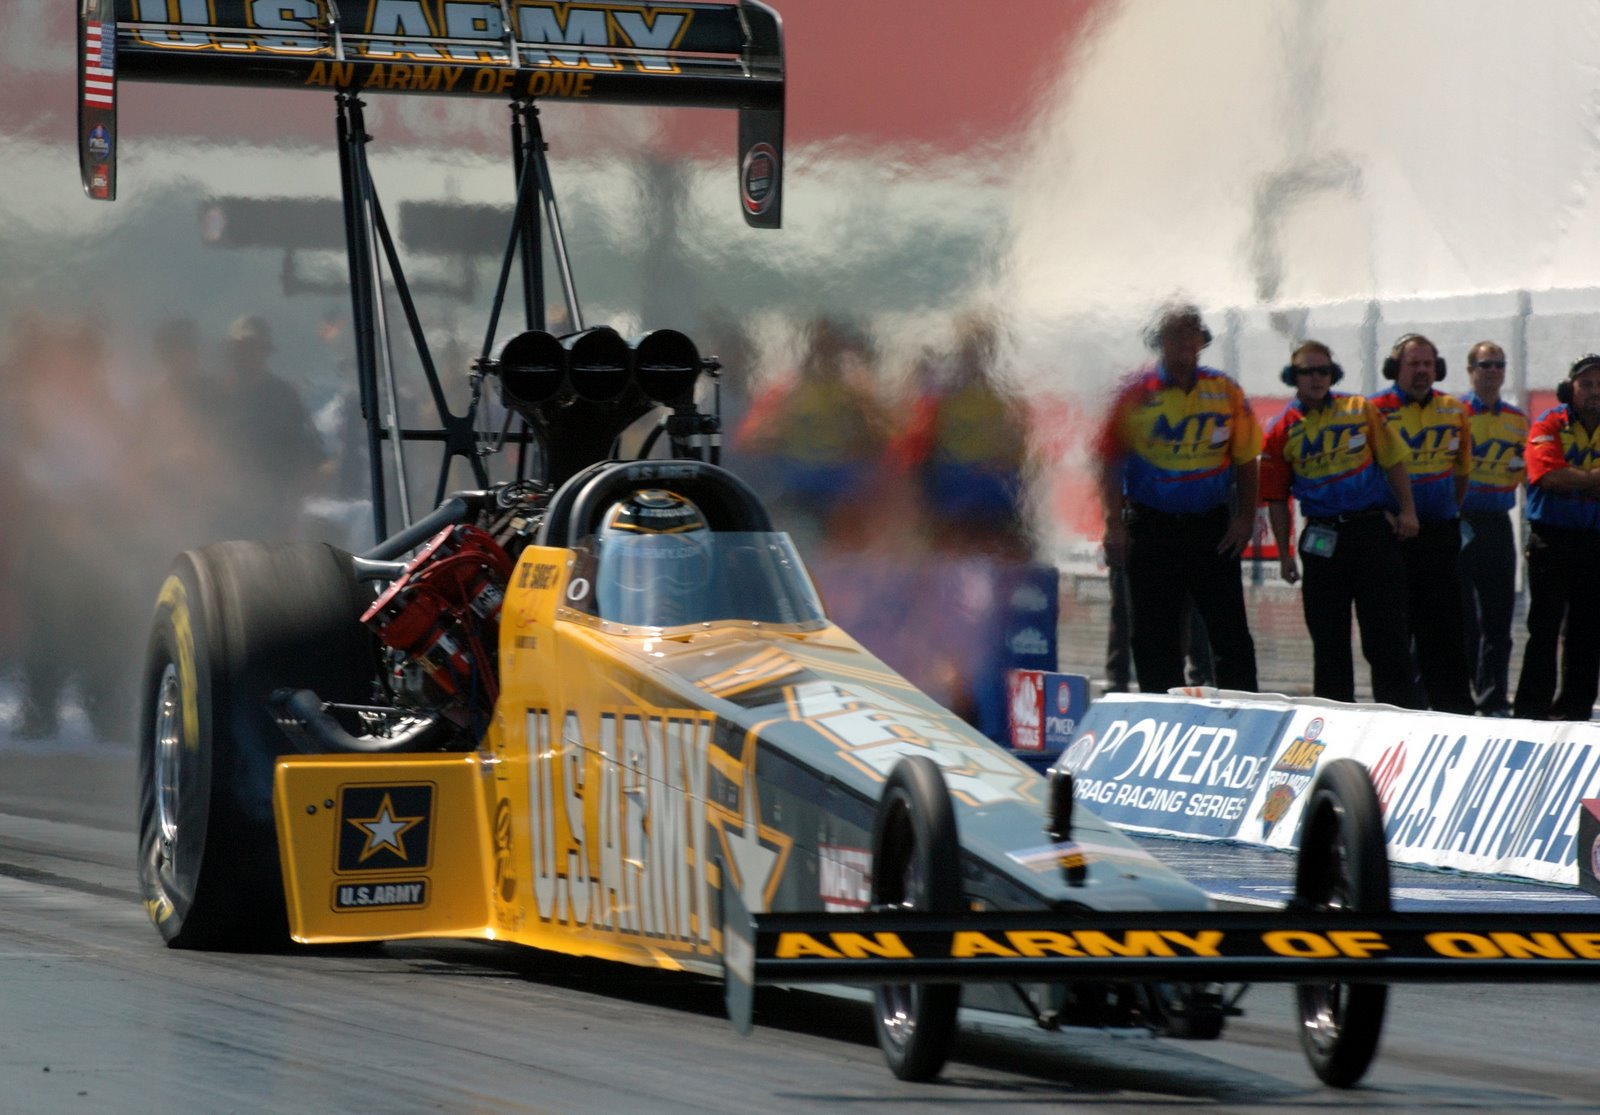 NHRA top fuel dragster Public Domain Clip Art Photos and Images